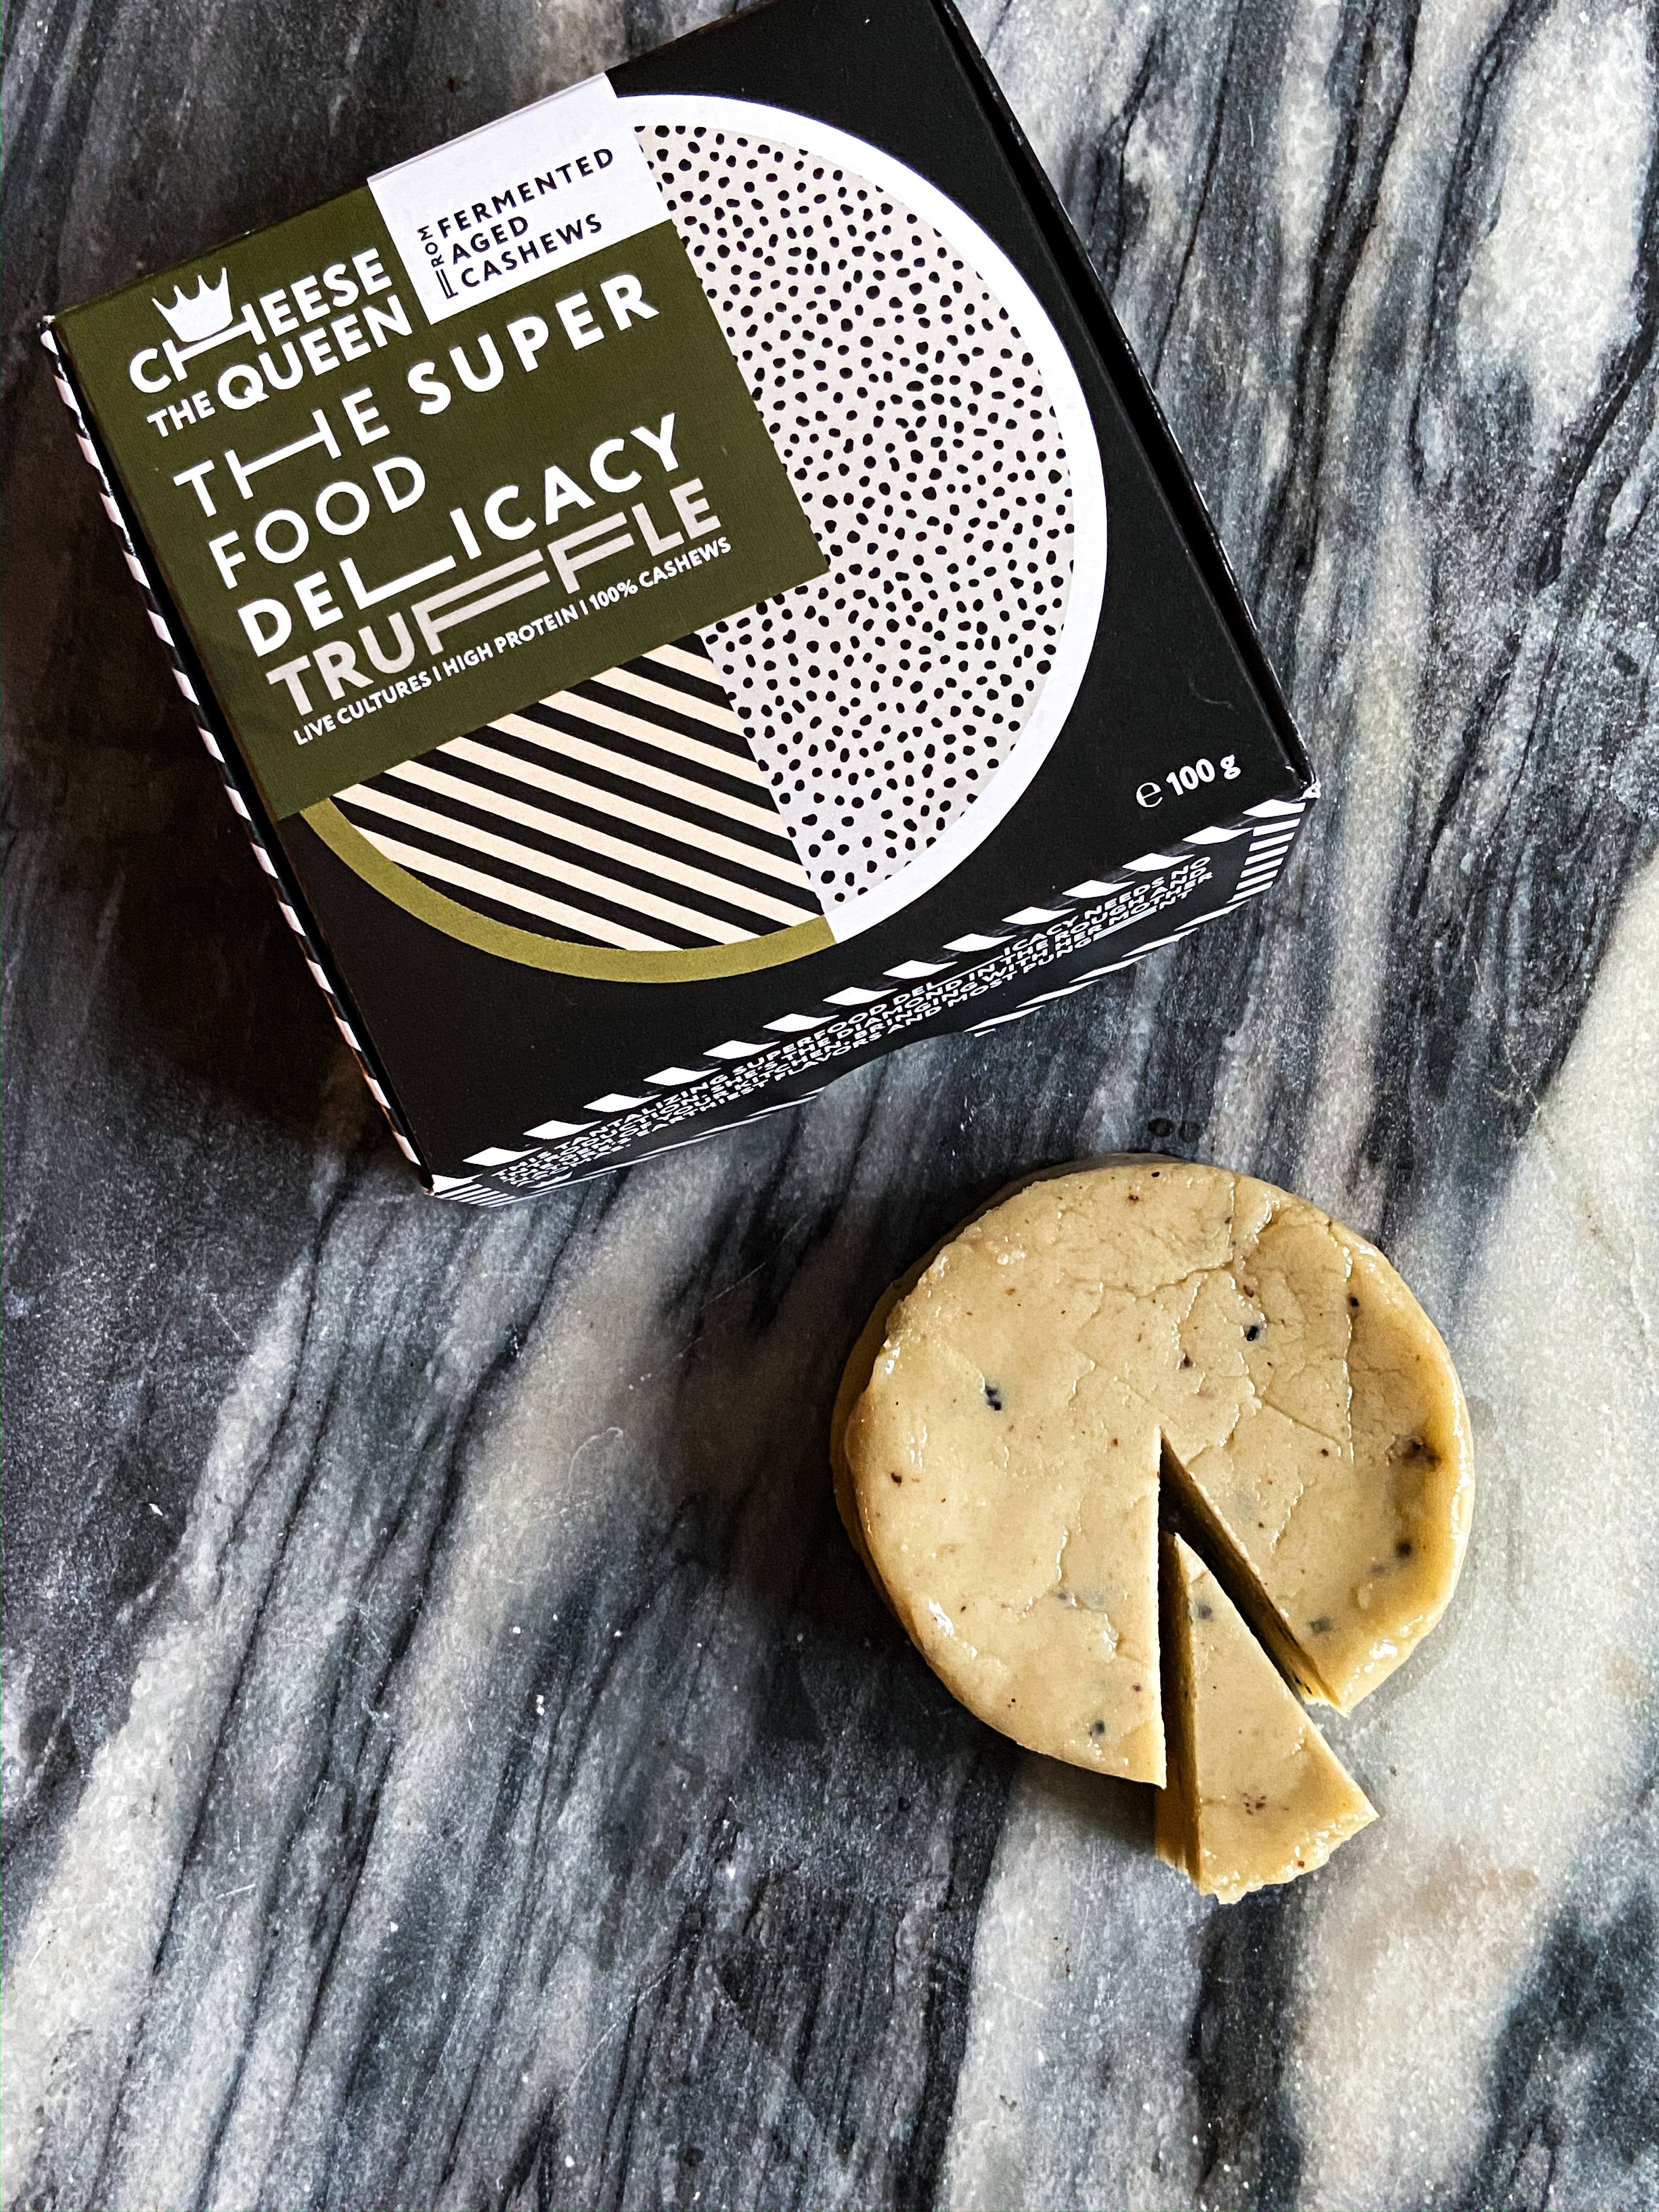 A box of 6 Truffle 'Cheese the Queen' Aged Cashew Delicacies